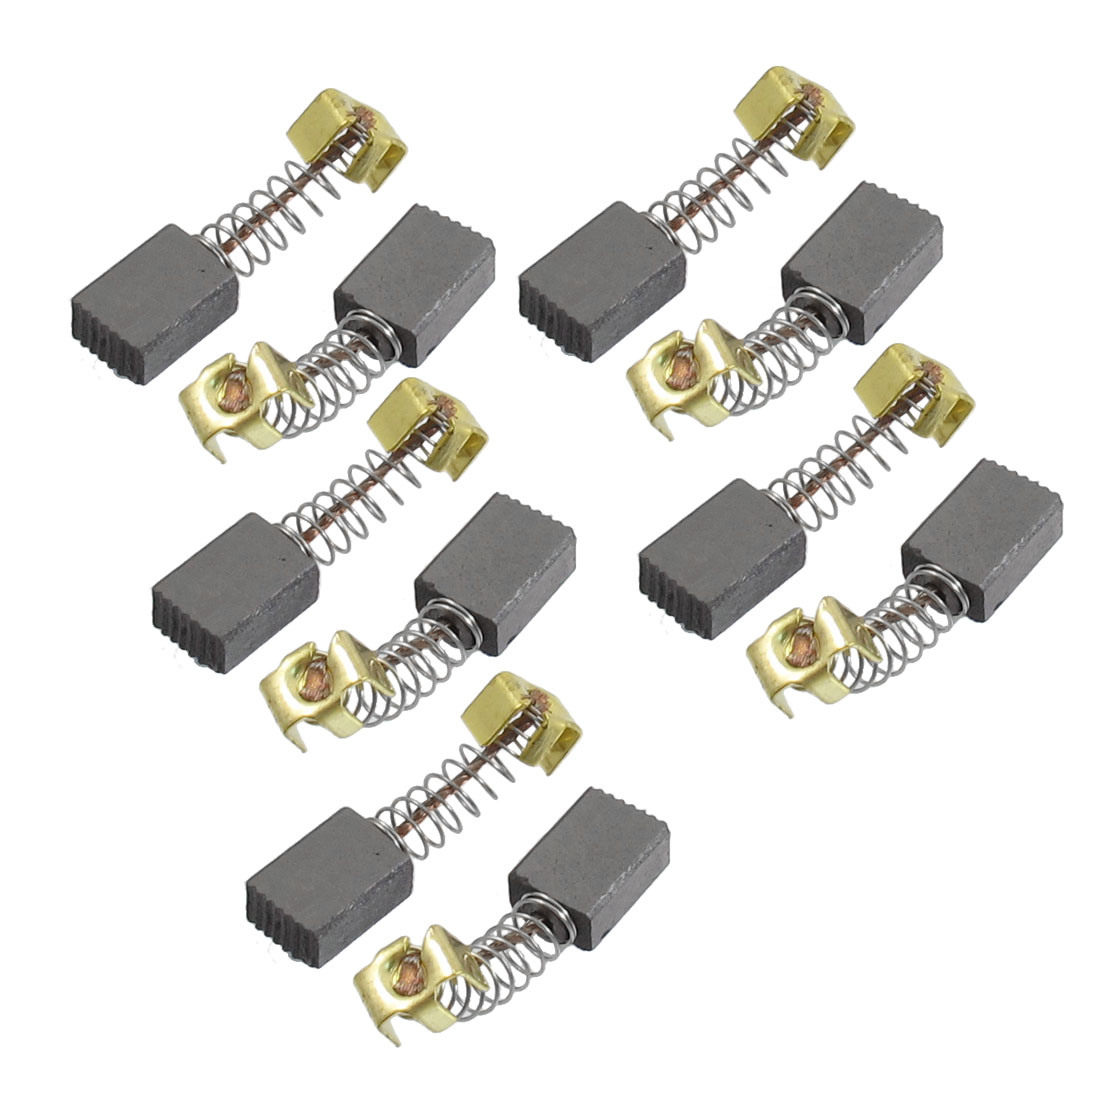 "10 Pcs Electric Motor Replacement 1/2"" x 3/13"" x 5/32"" Carbon Brushes"